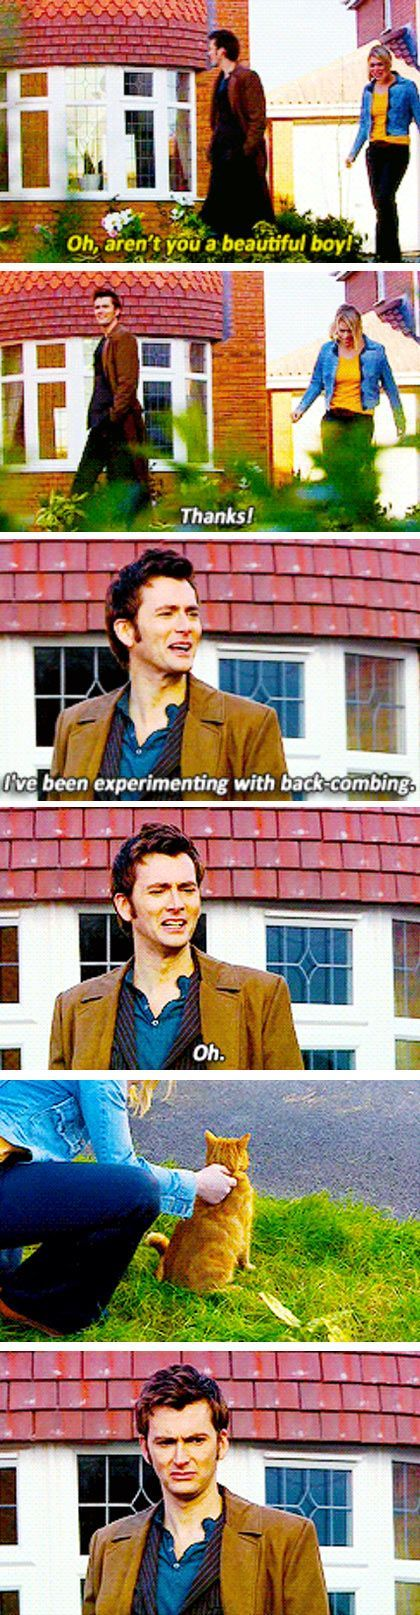 Rose Tyler and the Tenth Doctor.